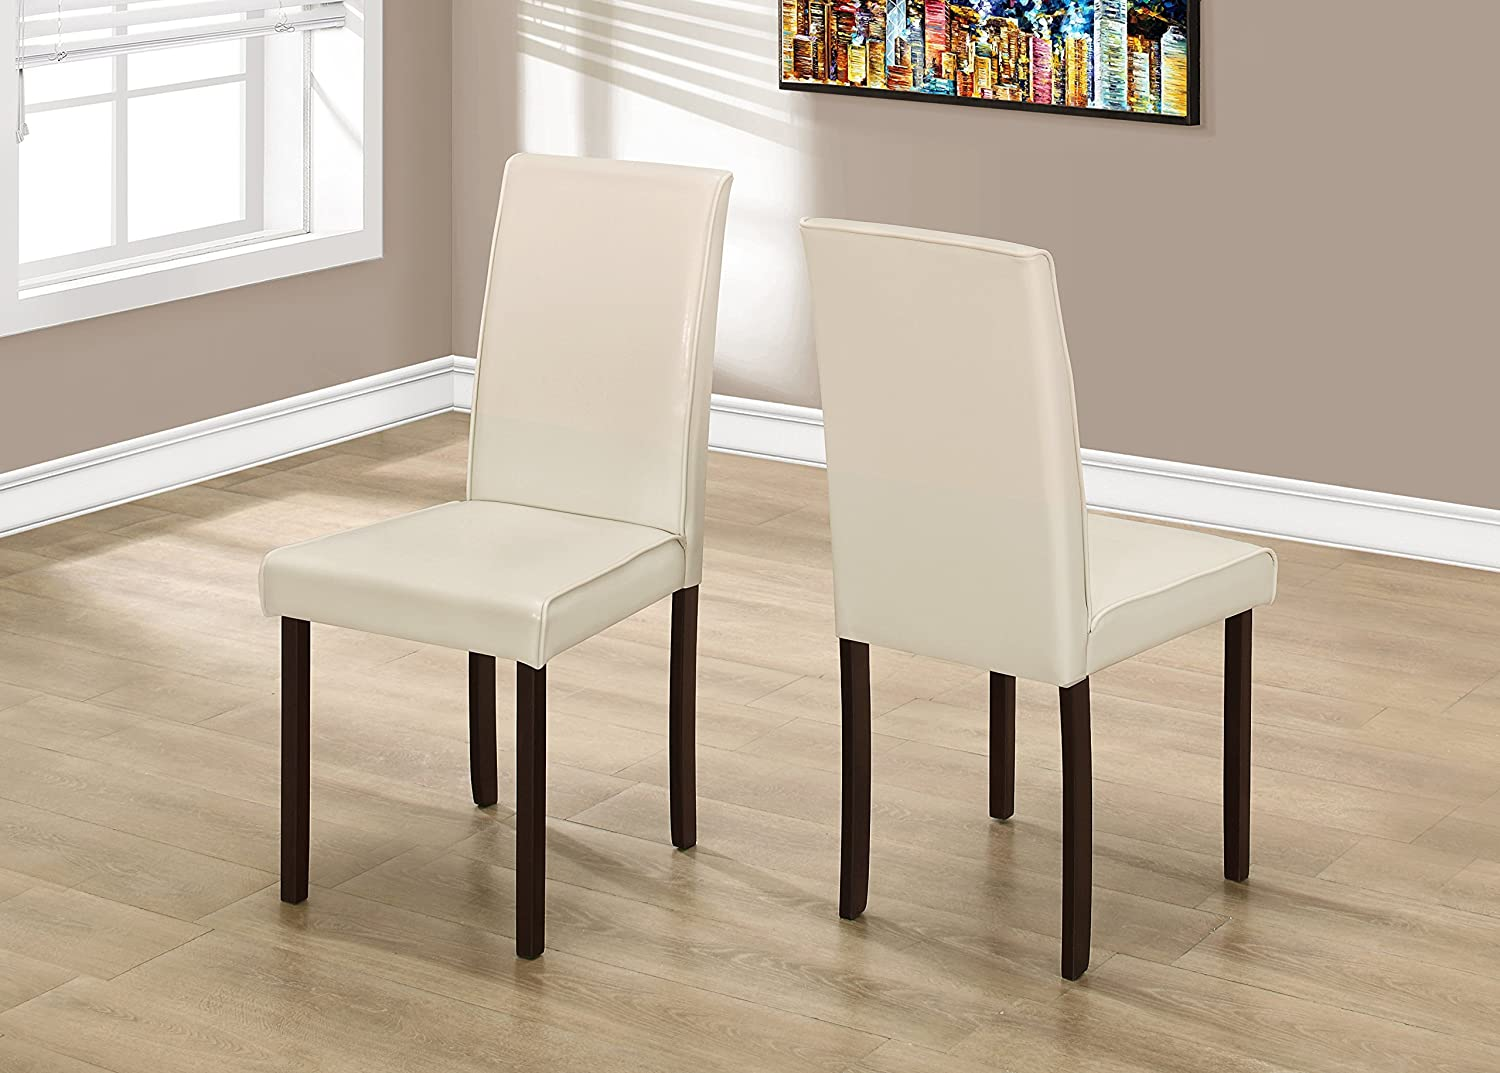 Monarch Specialties I 1174 Dining Chair, Ivory, 36